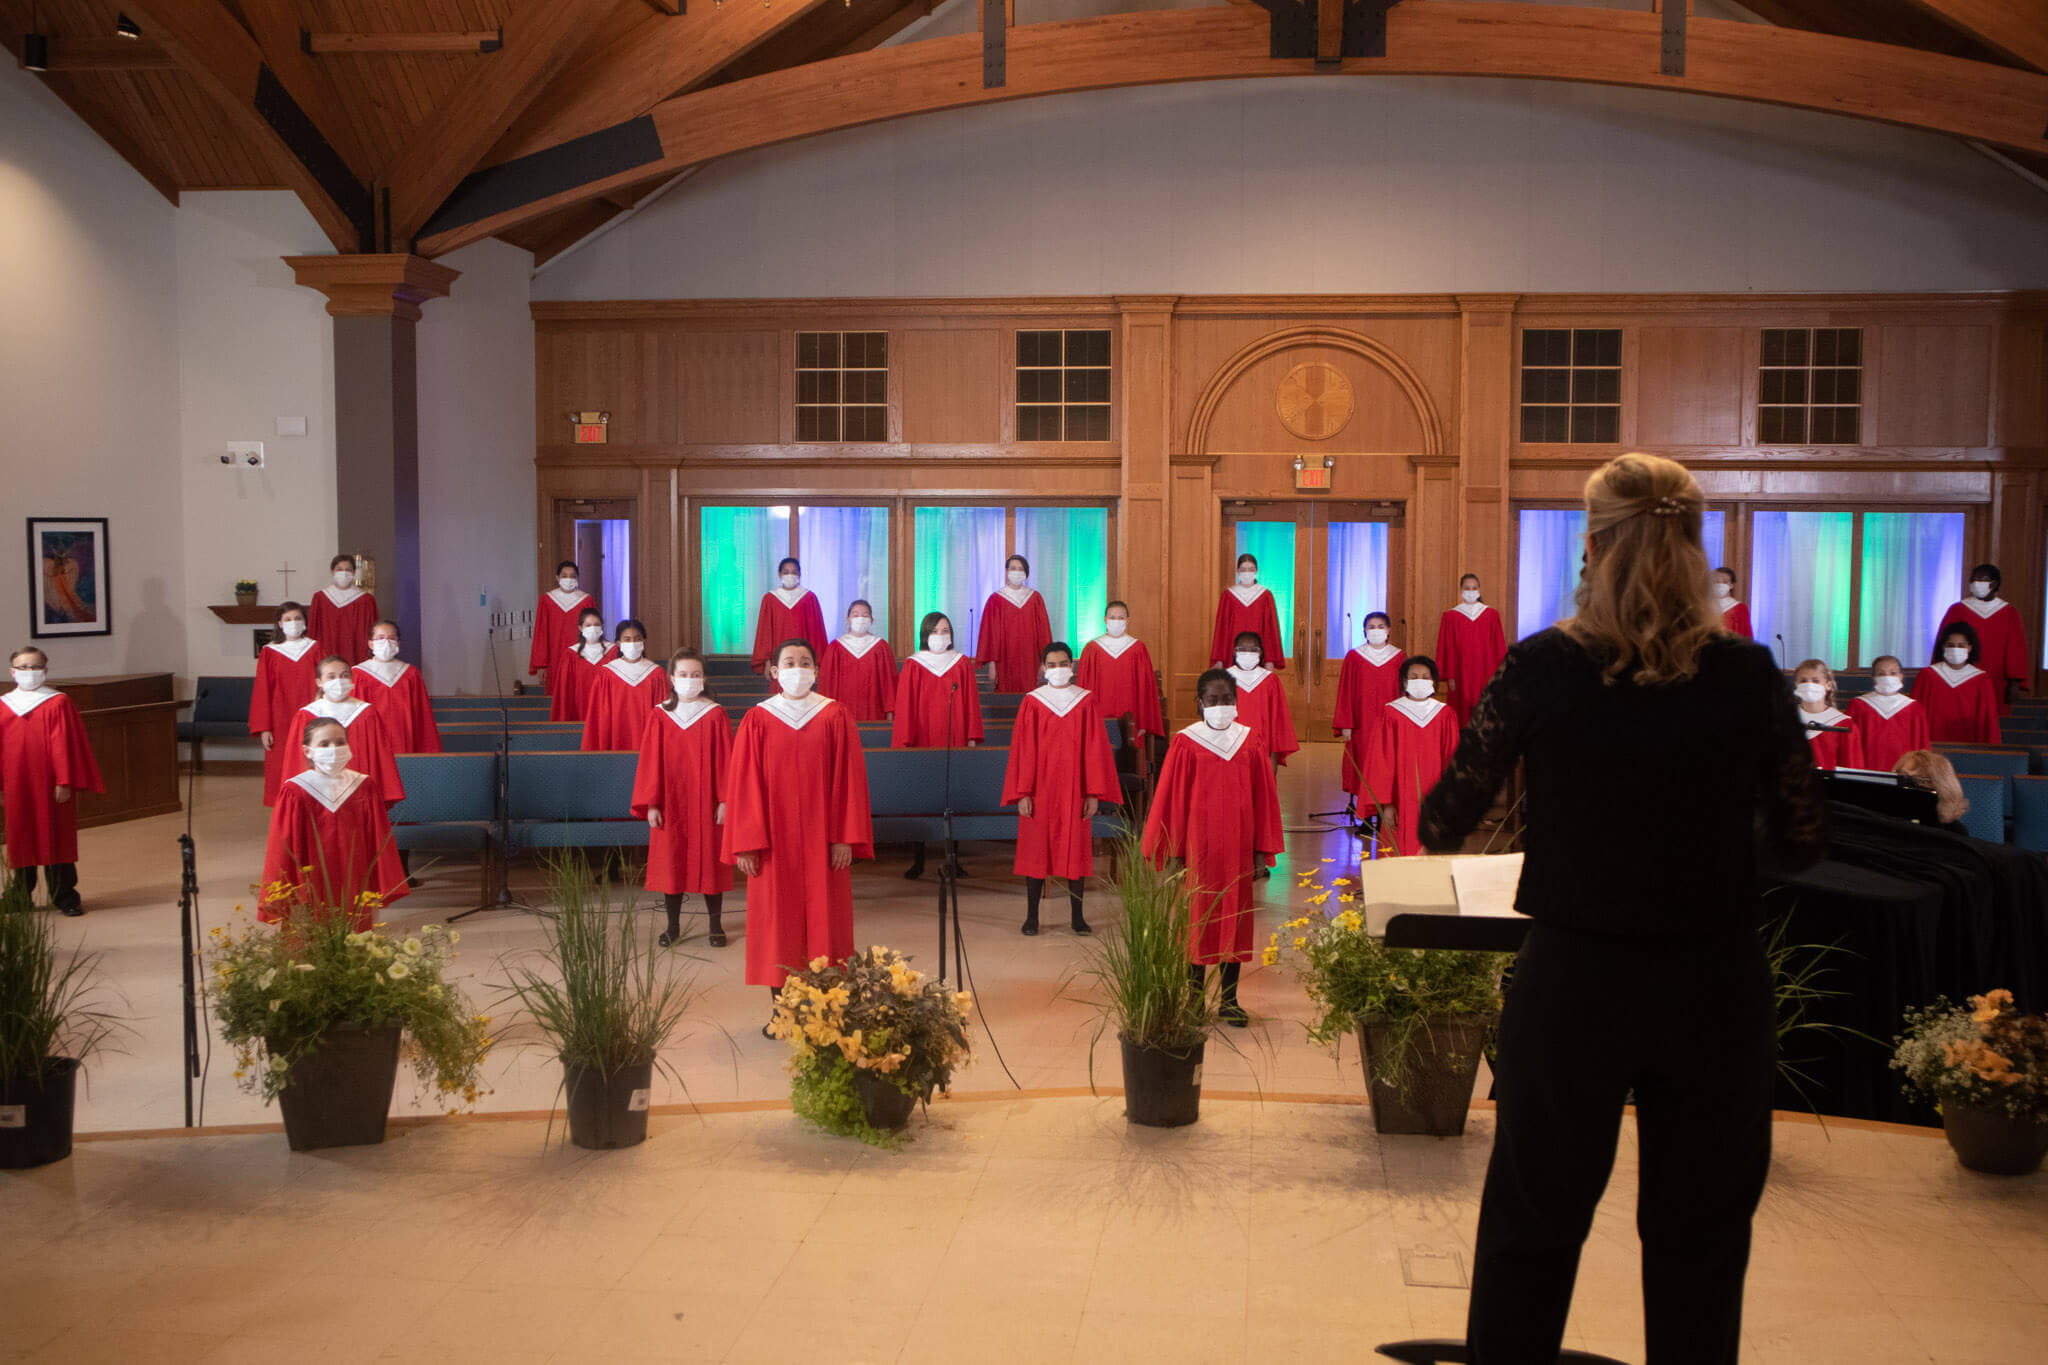 Chorale Spring Sing-Along Concert Photo